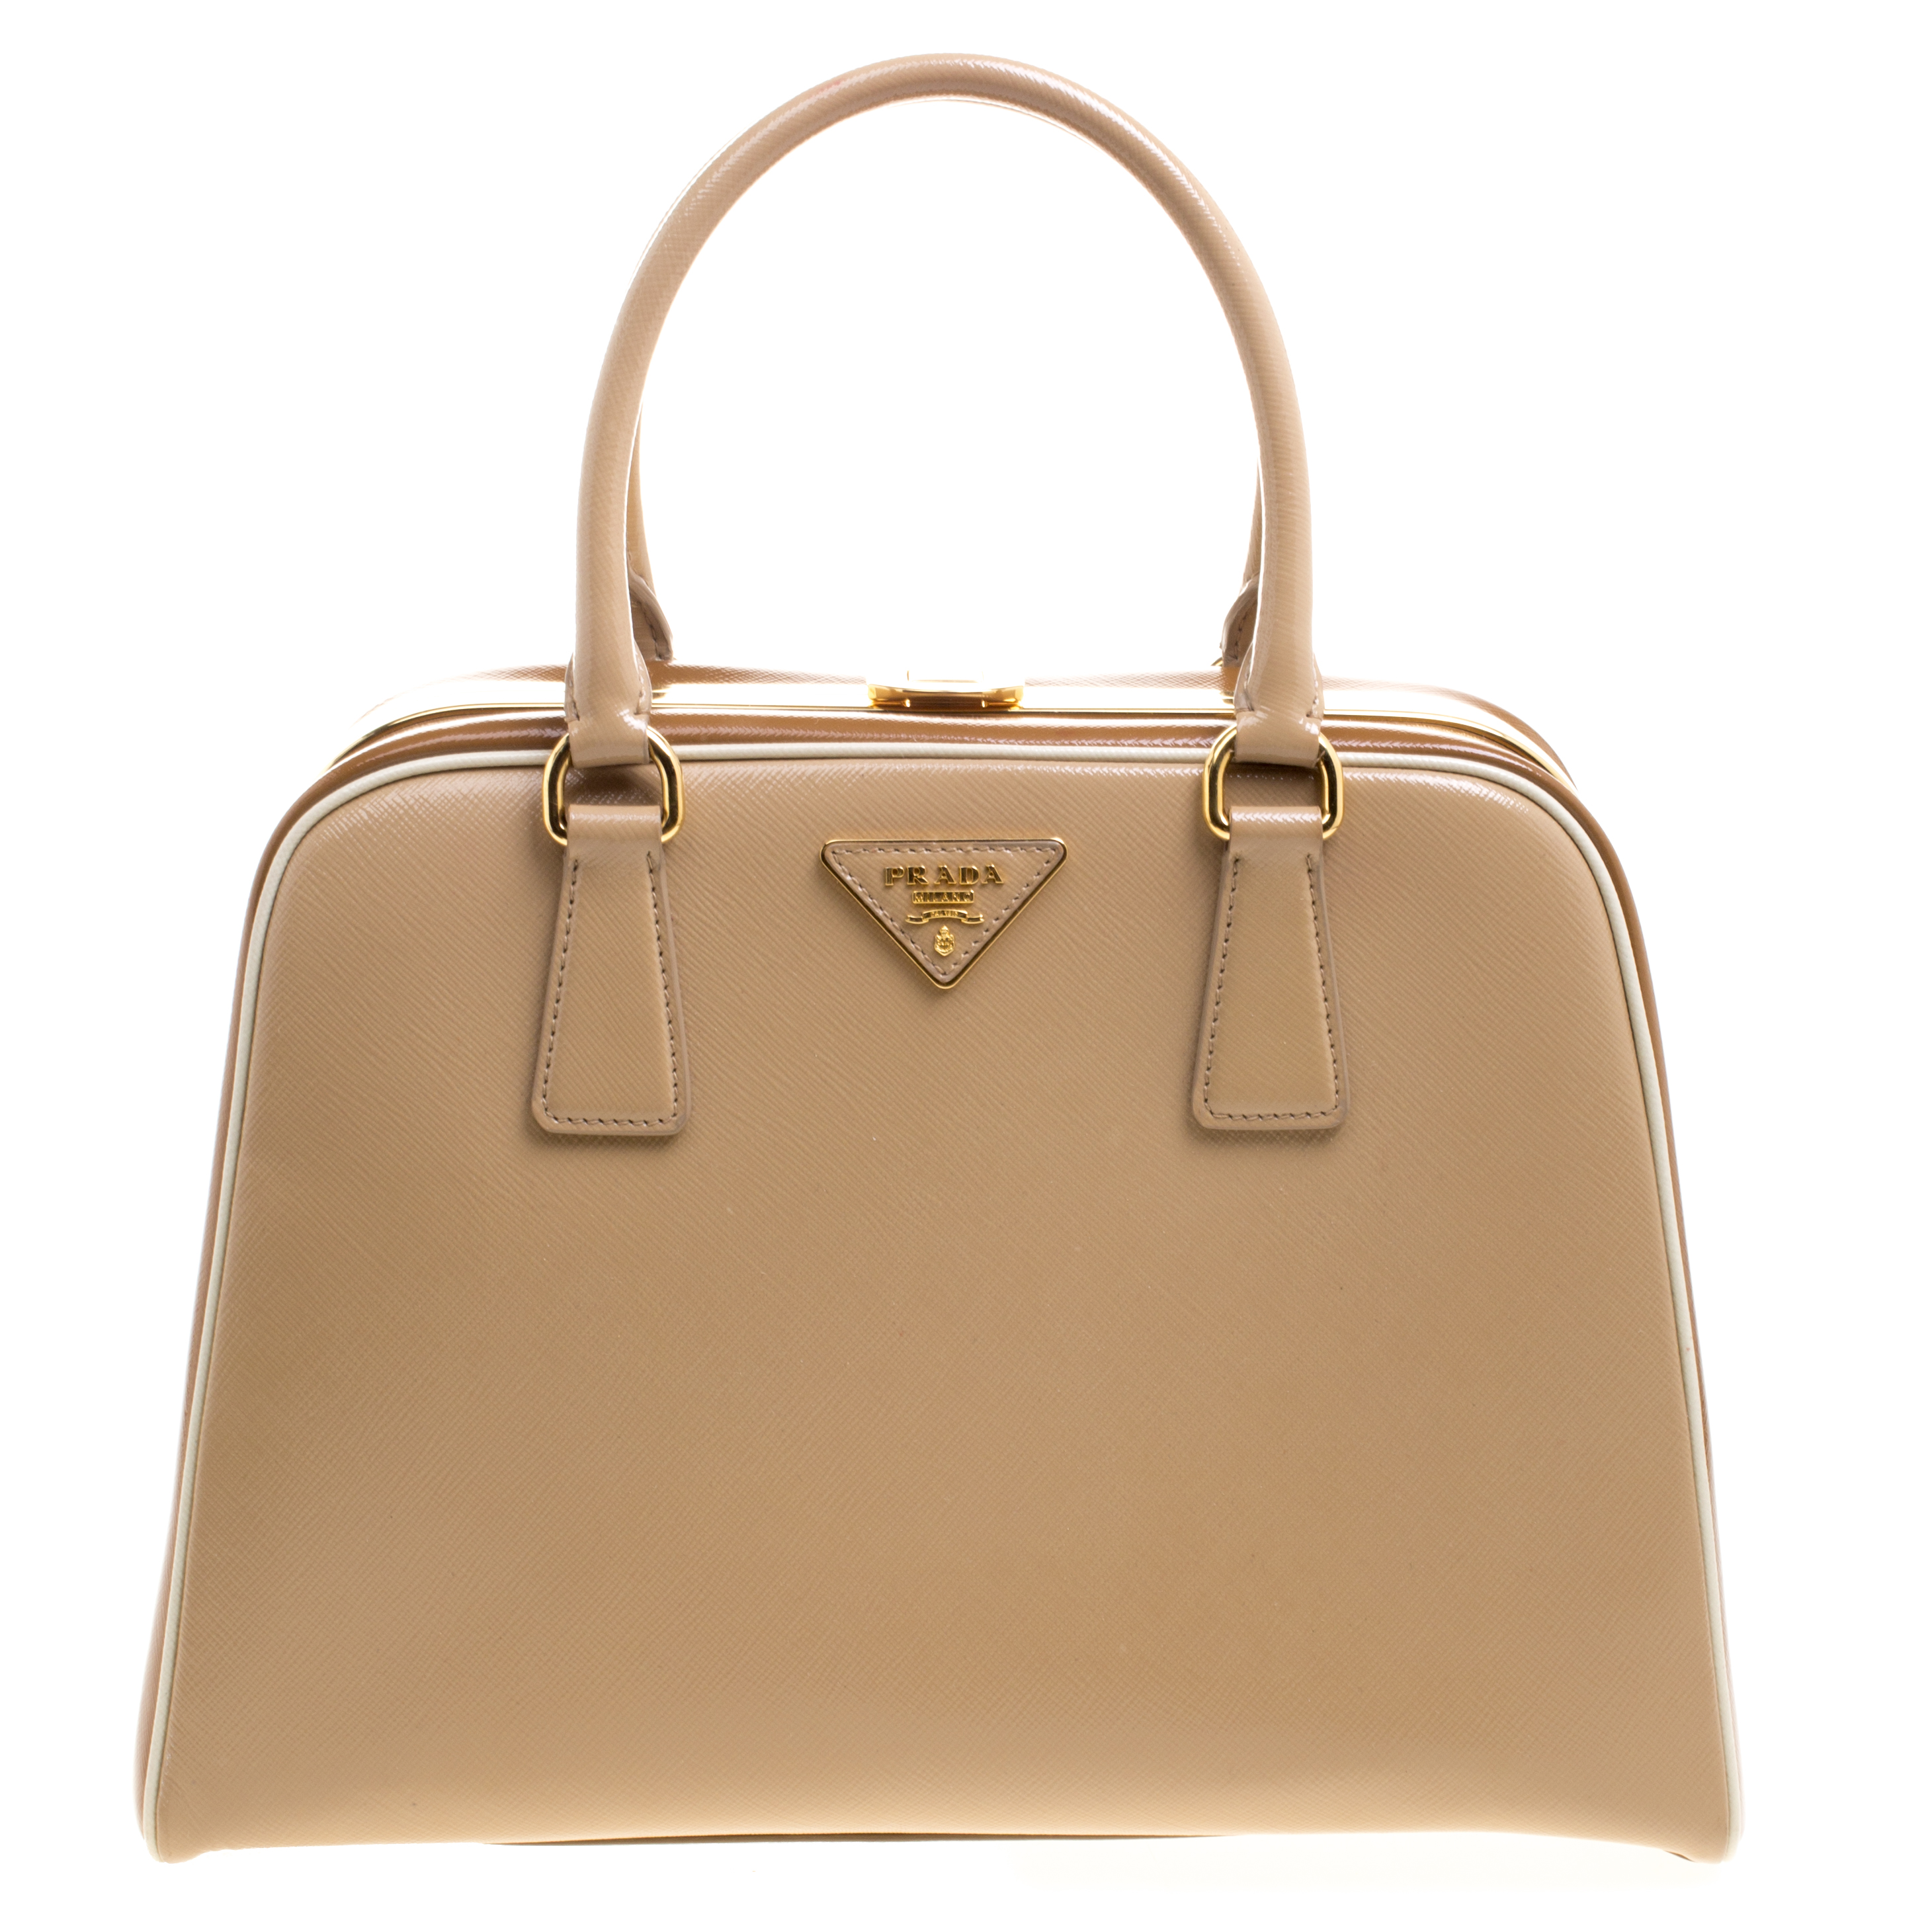 dfe9aa793d75 ... greece prada beige caramel patent leather pyramid frame top handle bag  85f3d a4c8a ...